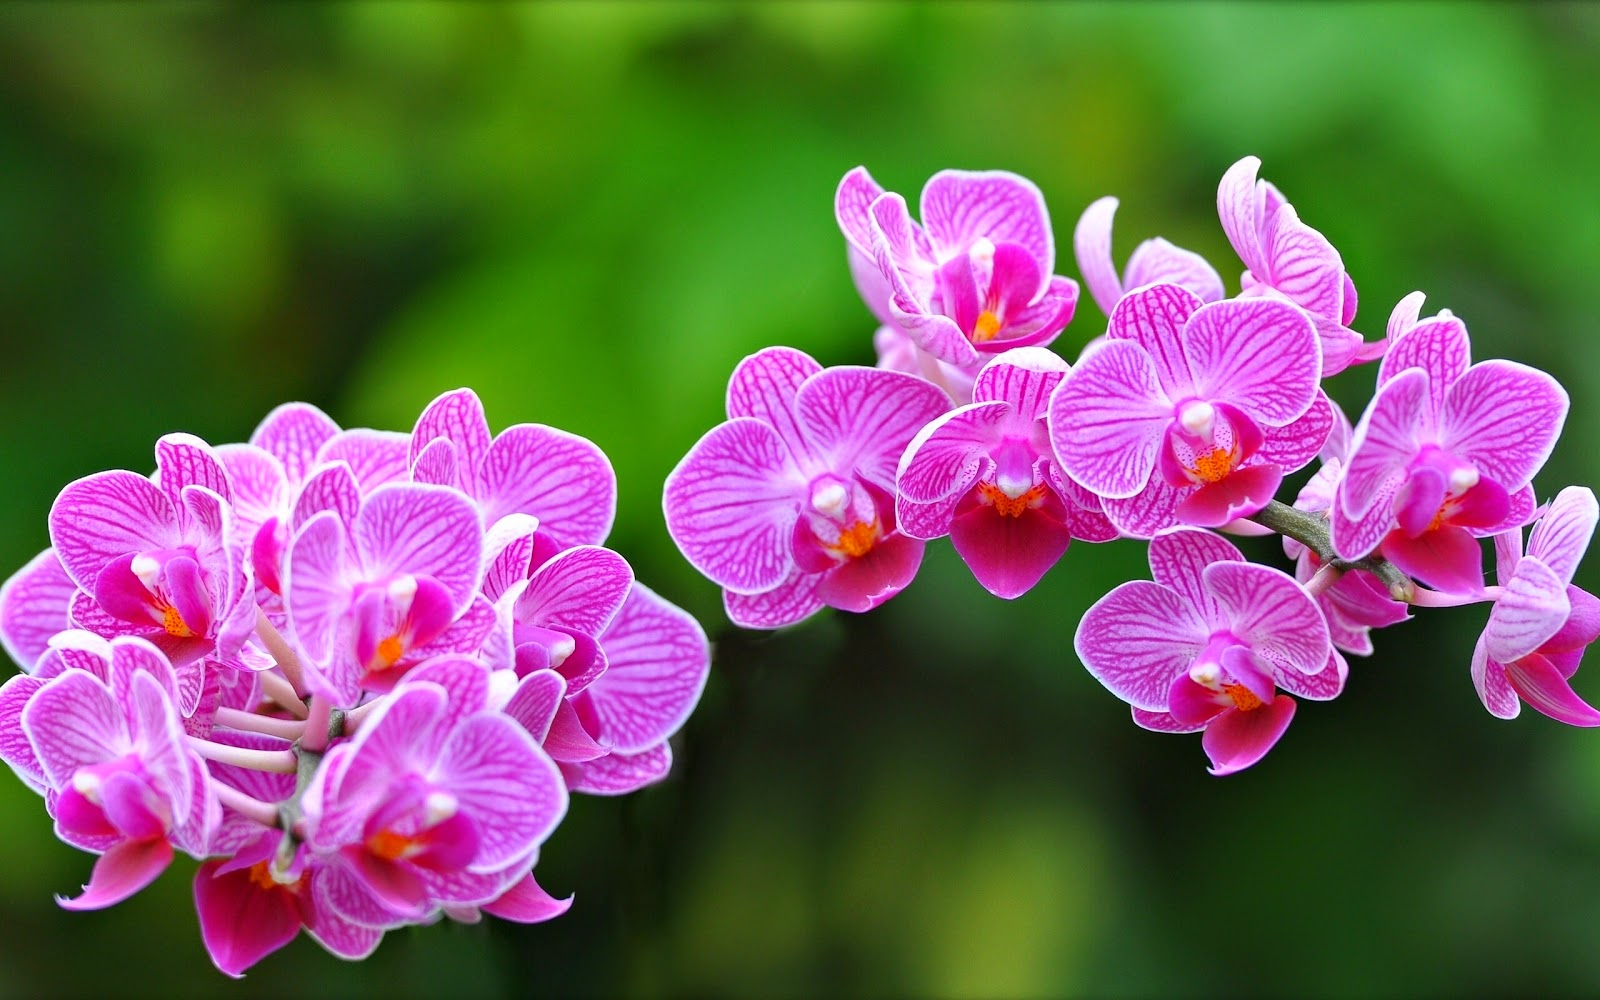 Orchid-flower-pictures-for-wishes-social-sharing.jpg